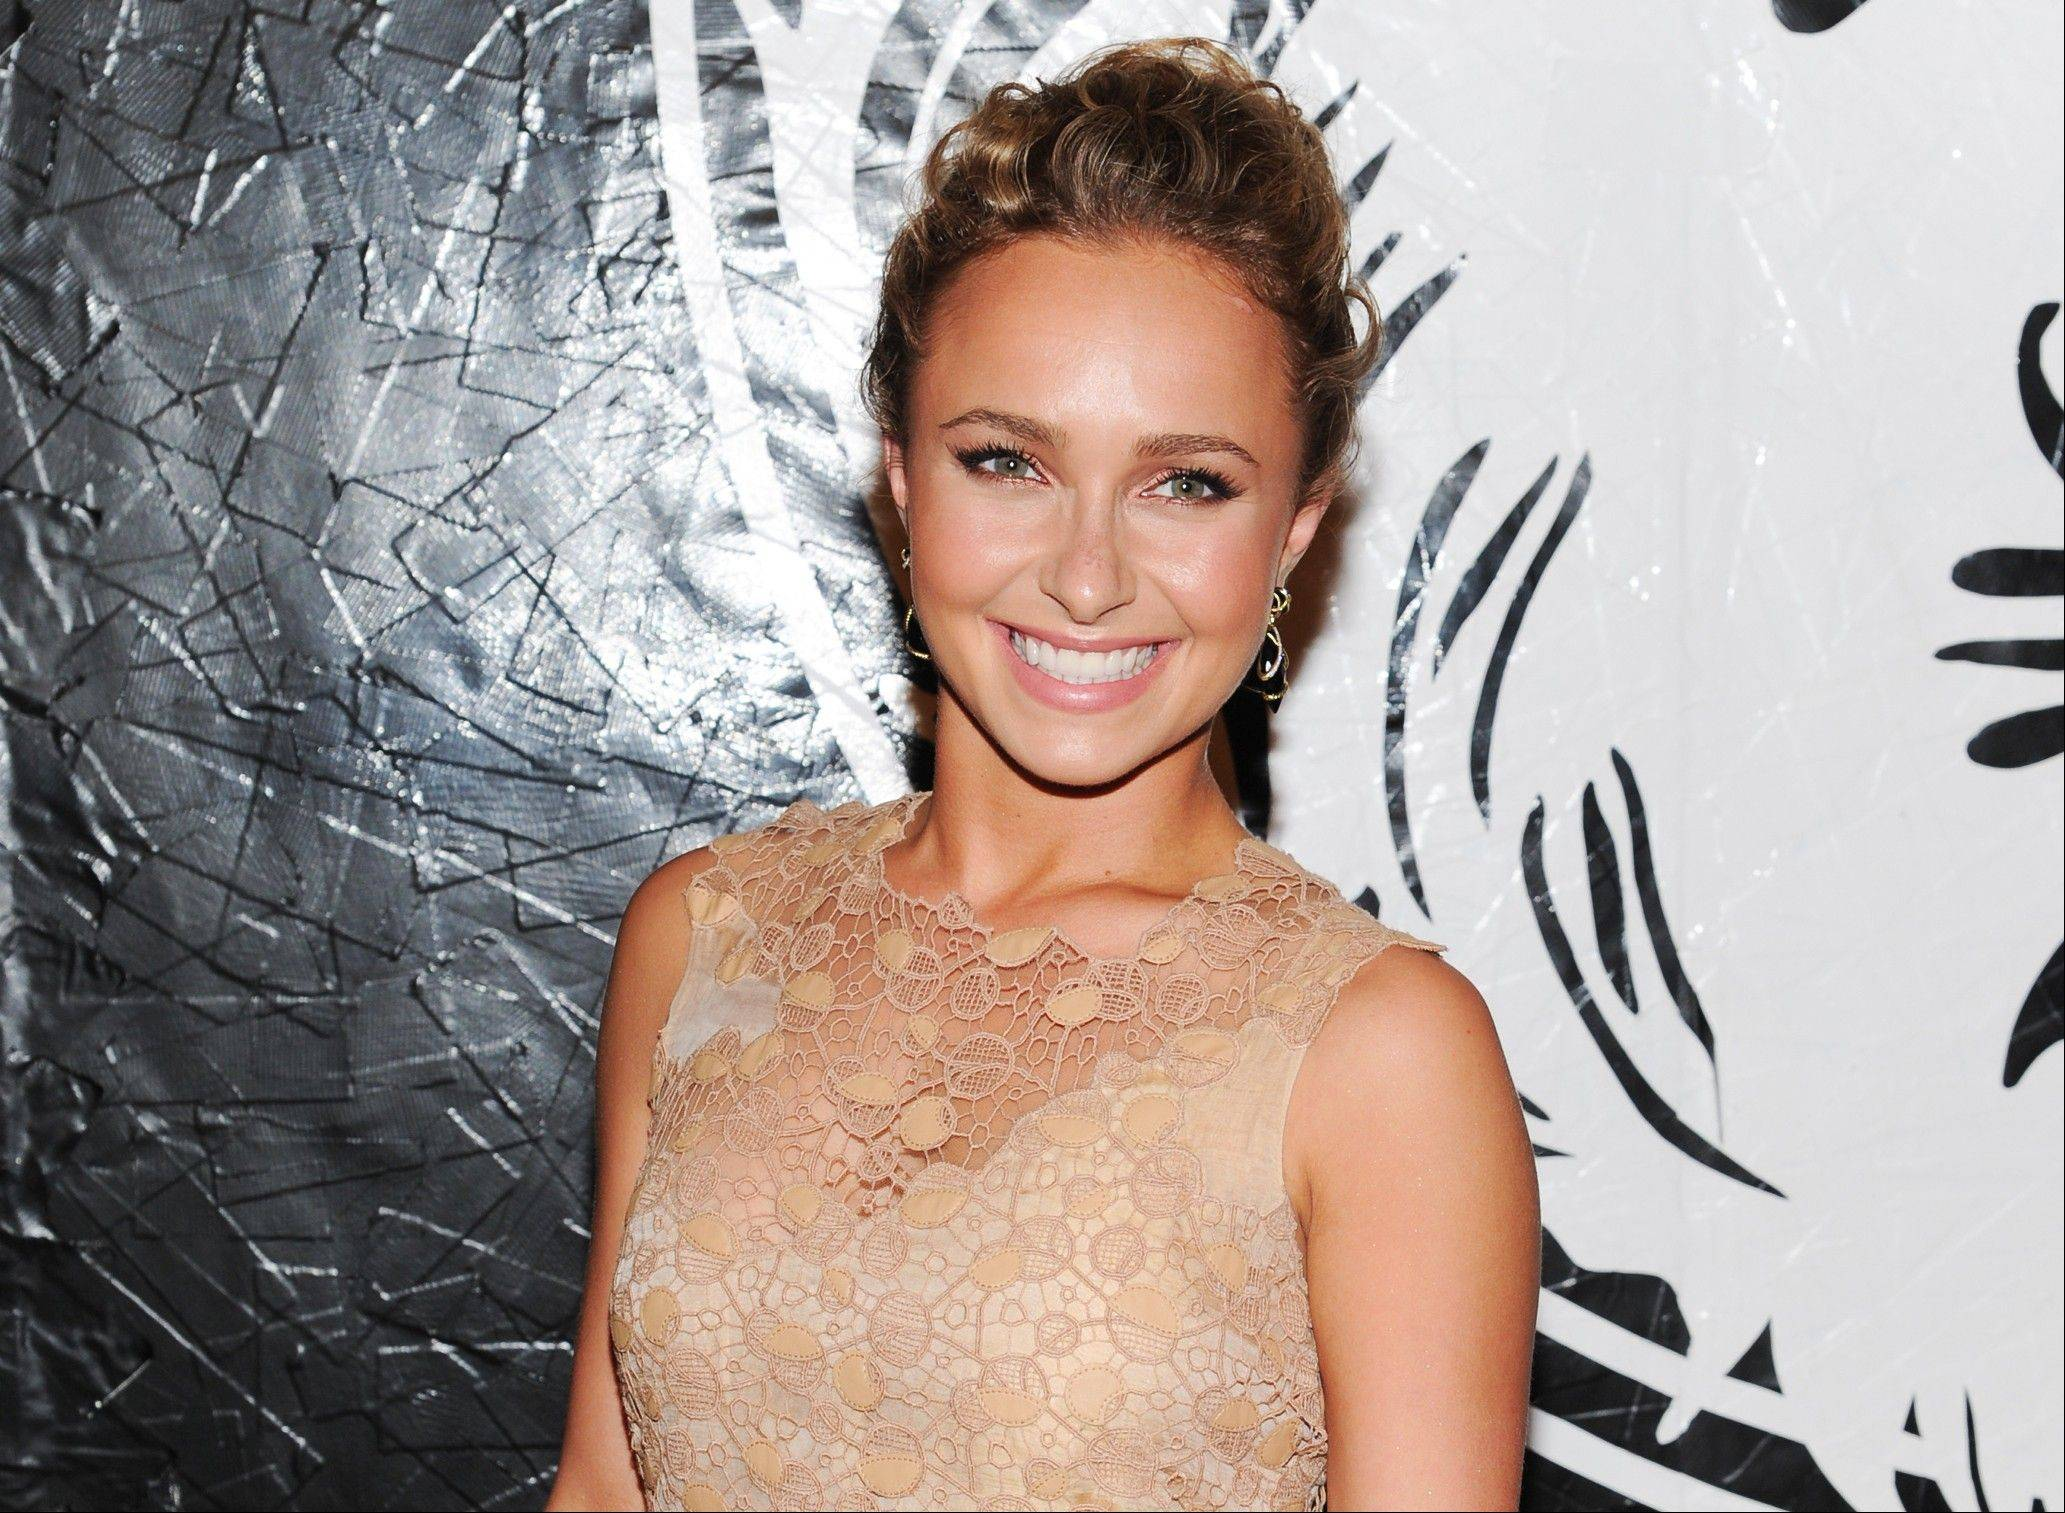 The Environmental Media Association is honoring Hayden Panettiere for her dedication to ecological causes.